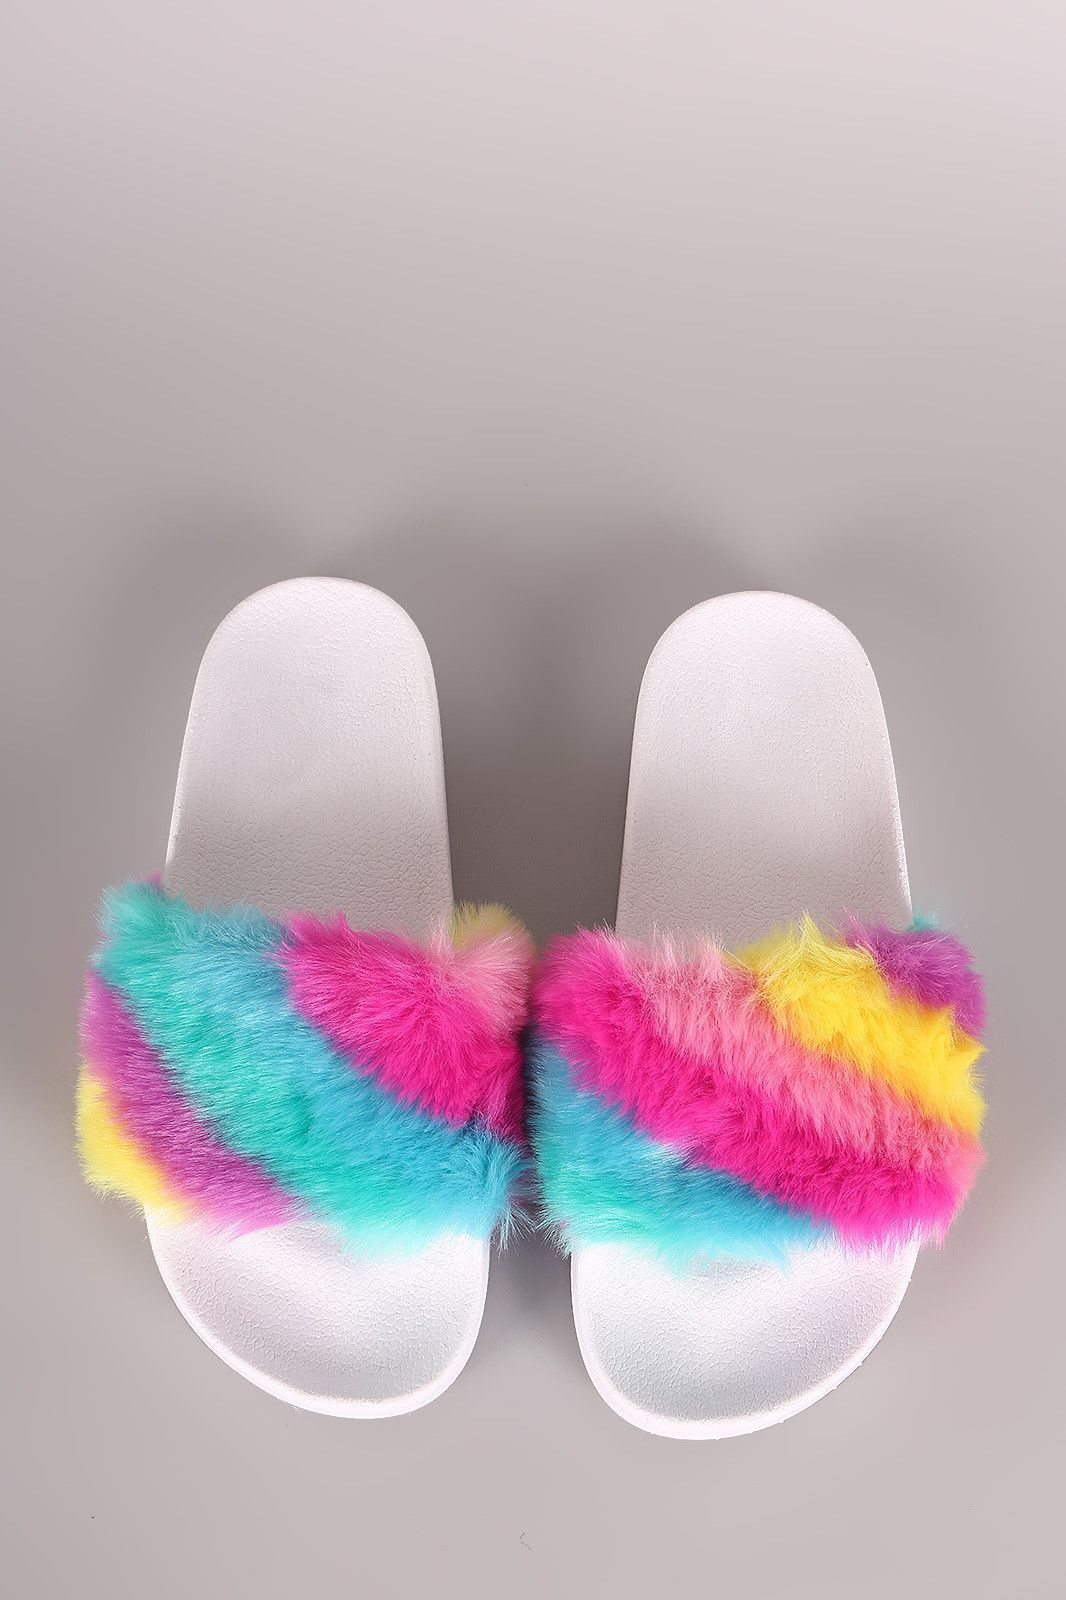 adae626d2115 This bold sandal features a wide fabric-lined band with fuzzy faux fur trim  finish. Easy slip-on style. Material  Faux Fur (man-made) Sole  PVC  Measurement ...